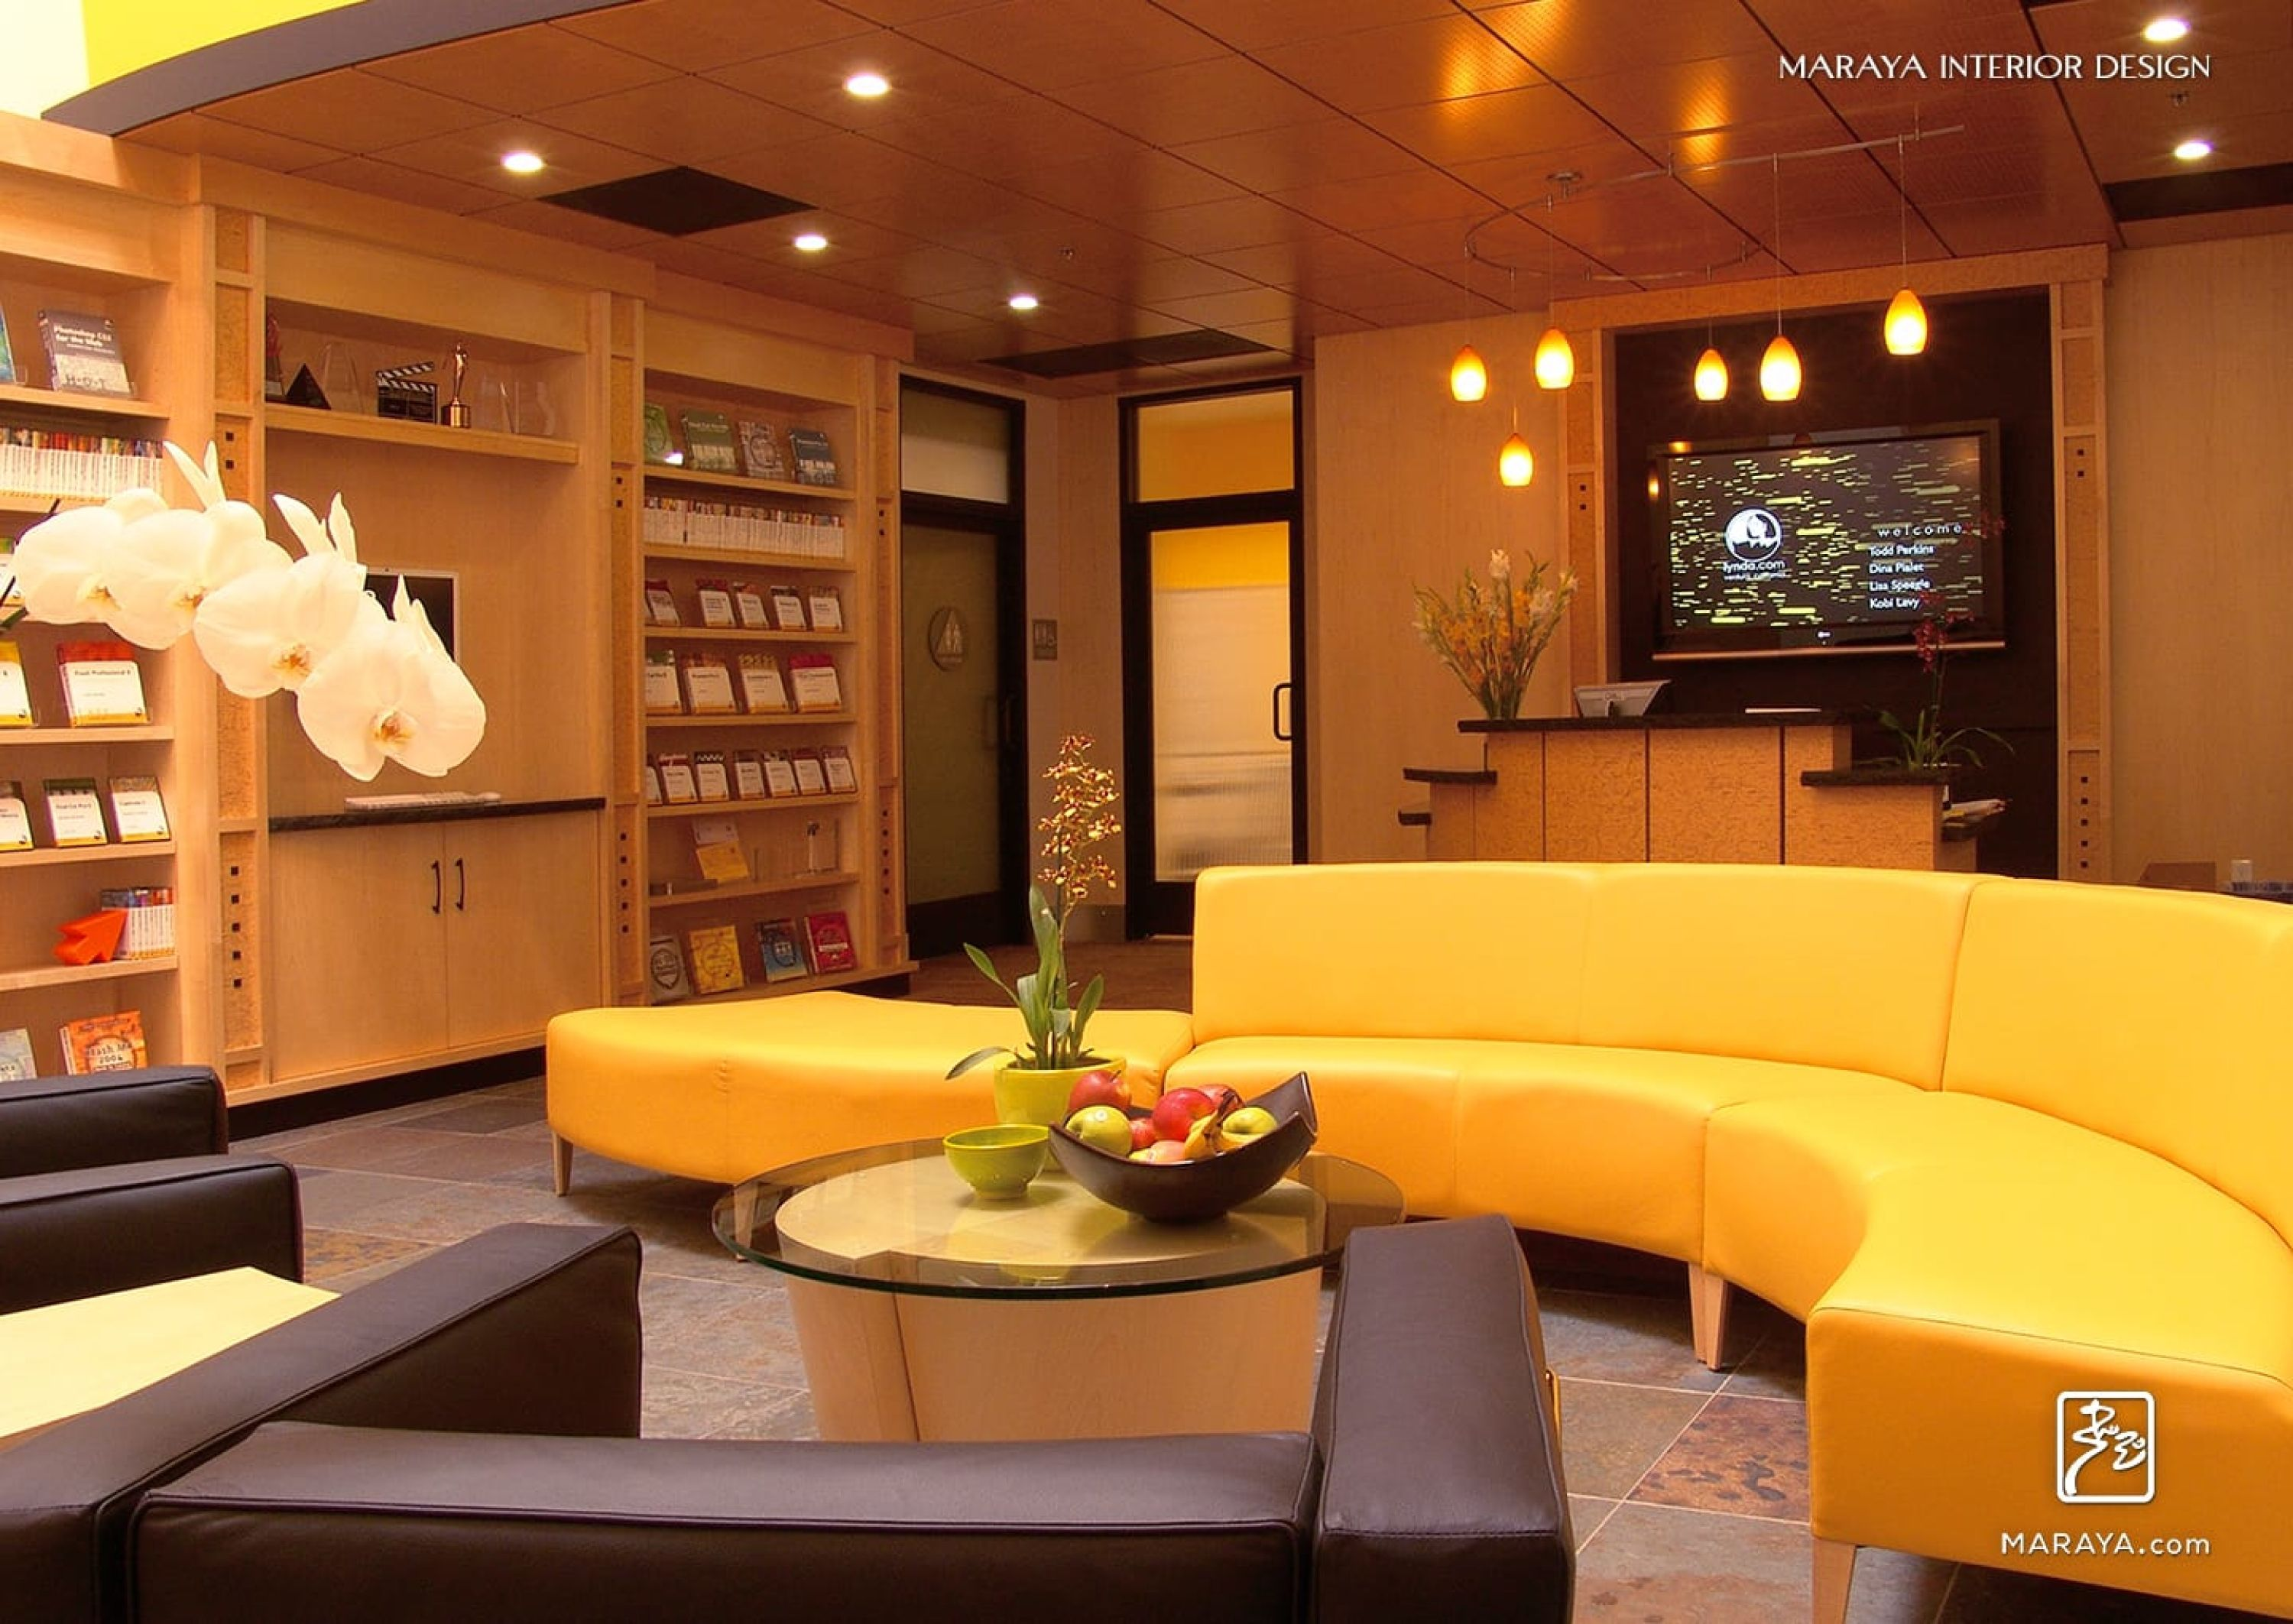 open office architecture images space. Lynda.com Open Modern Office. Yellow Curved Sofa In Reception Area. Maraya Interior Office Architecture Images Space